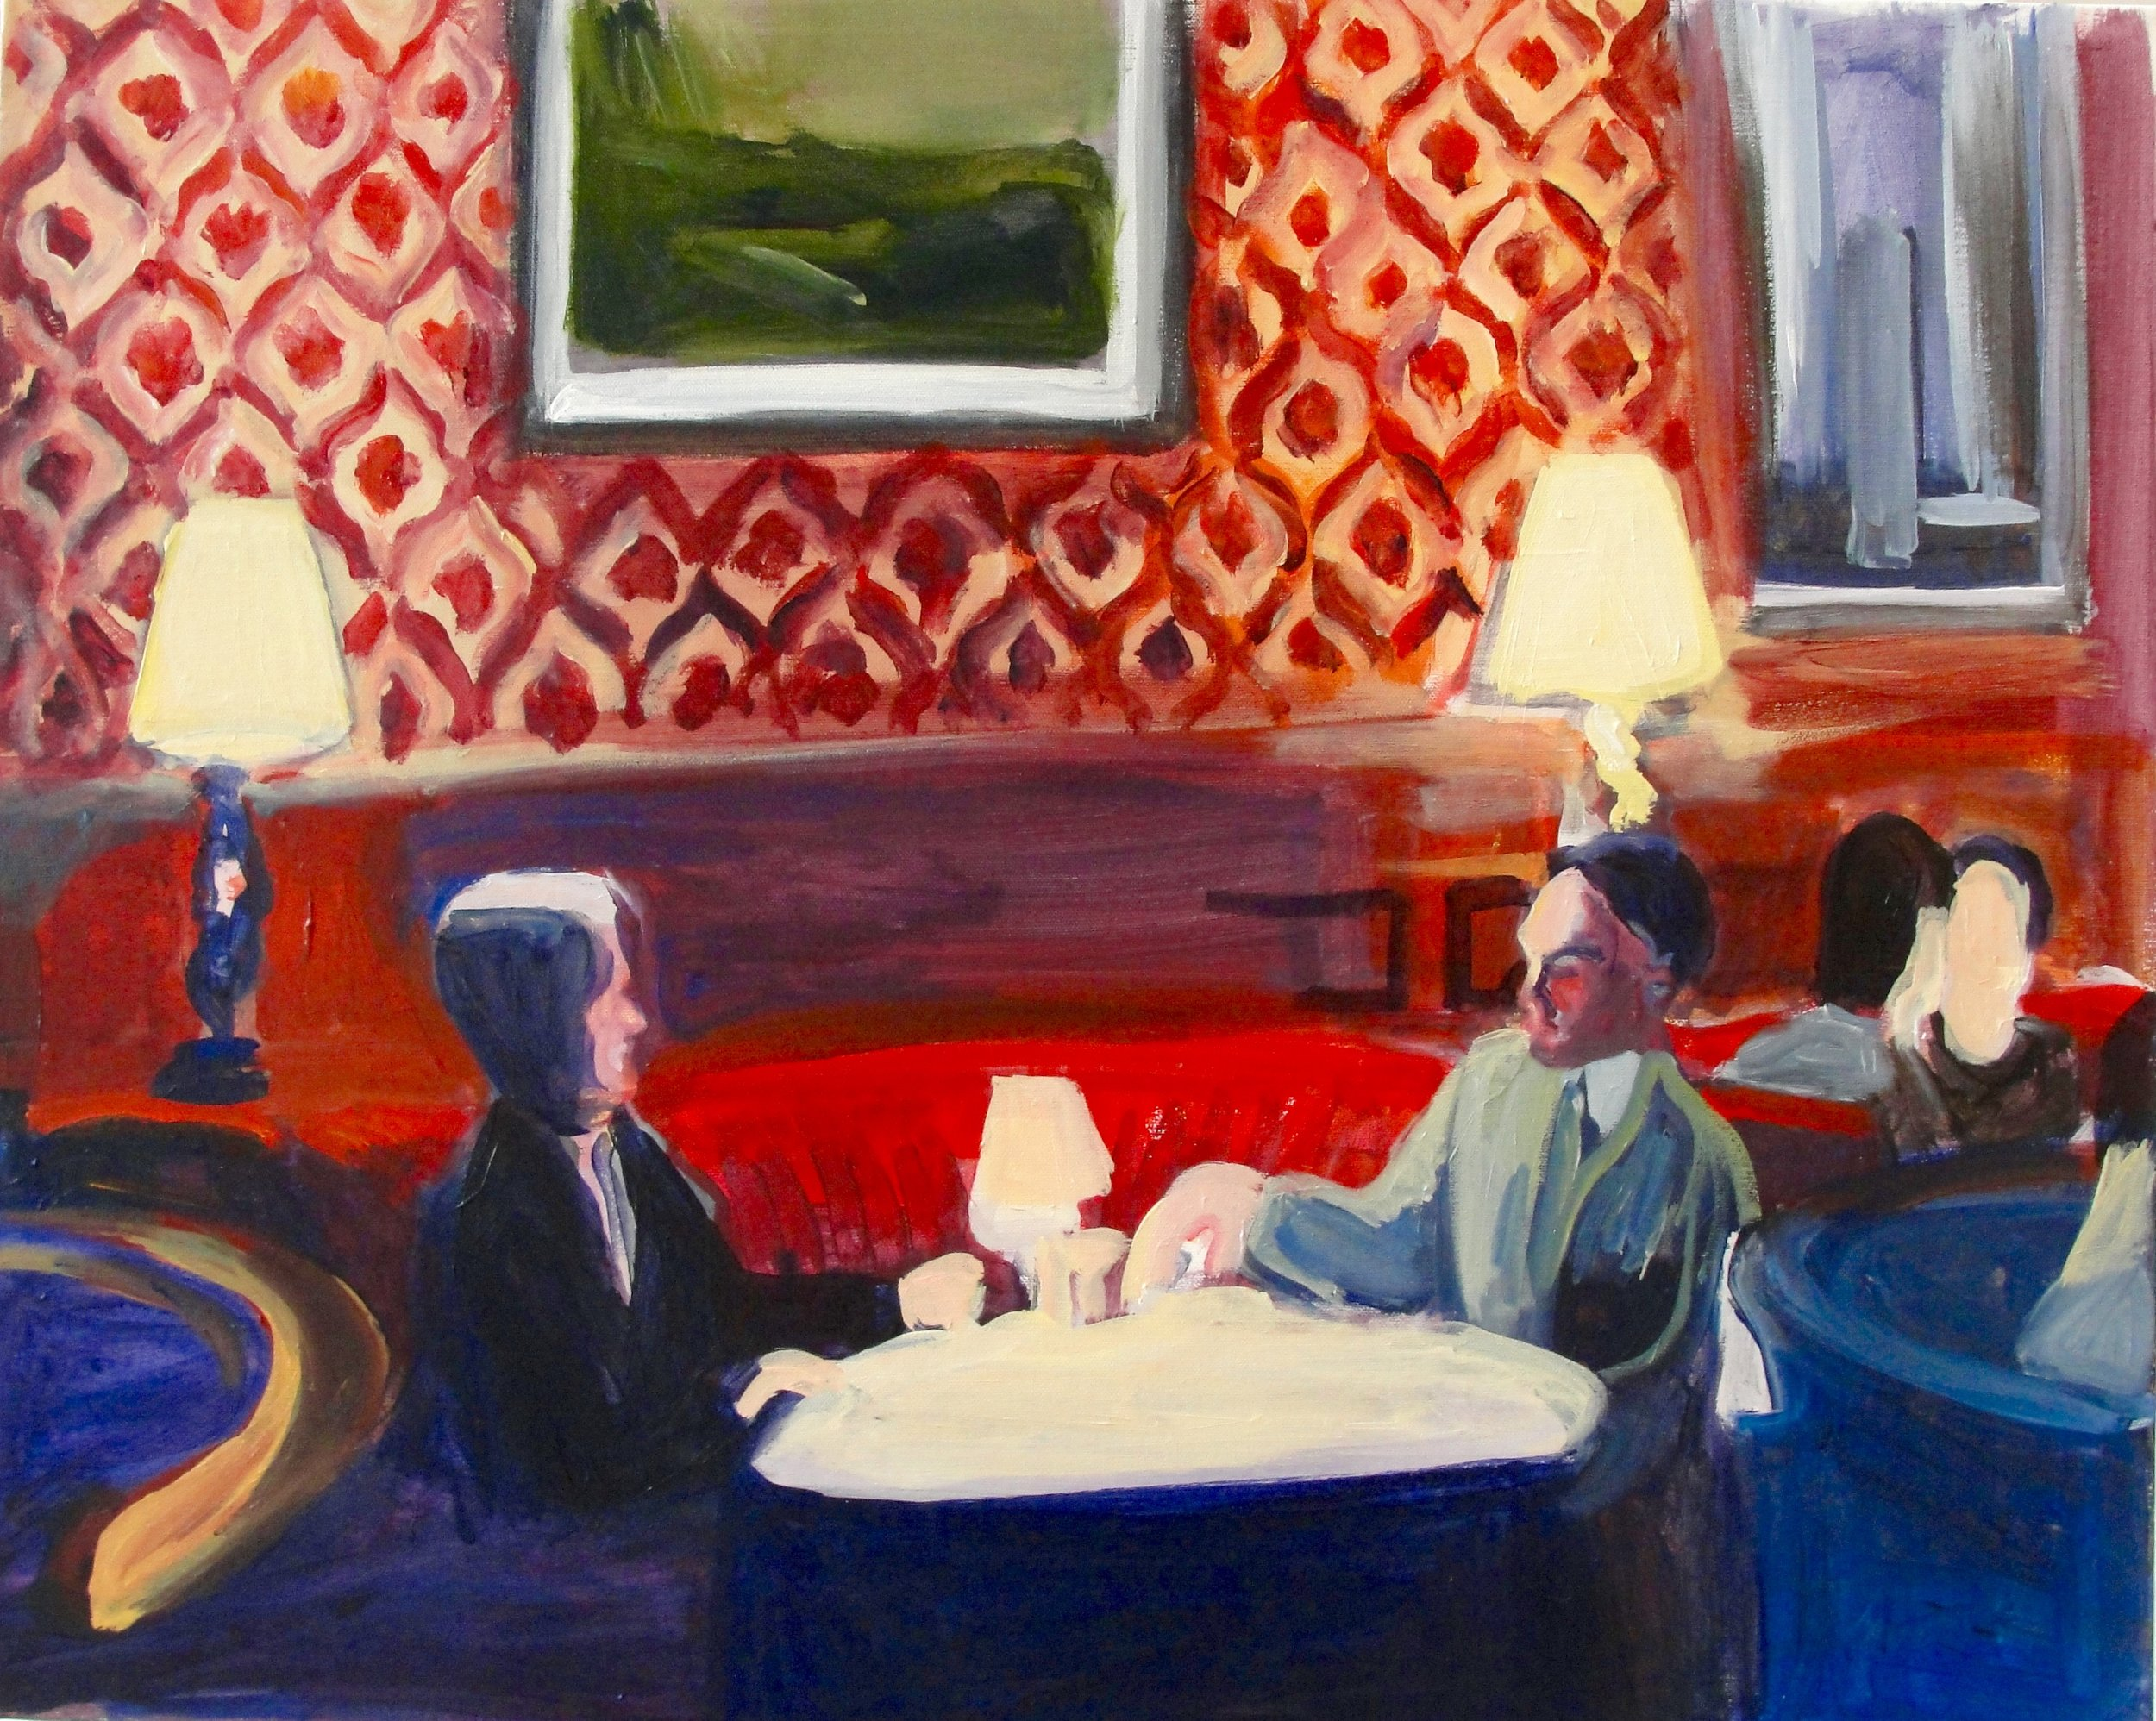 BUSINESS LUNCH (2010). Acrylic on canvas, 24 x 30 inches. Private collection, U.S.